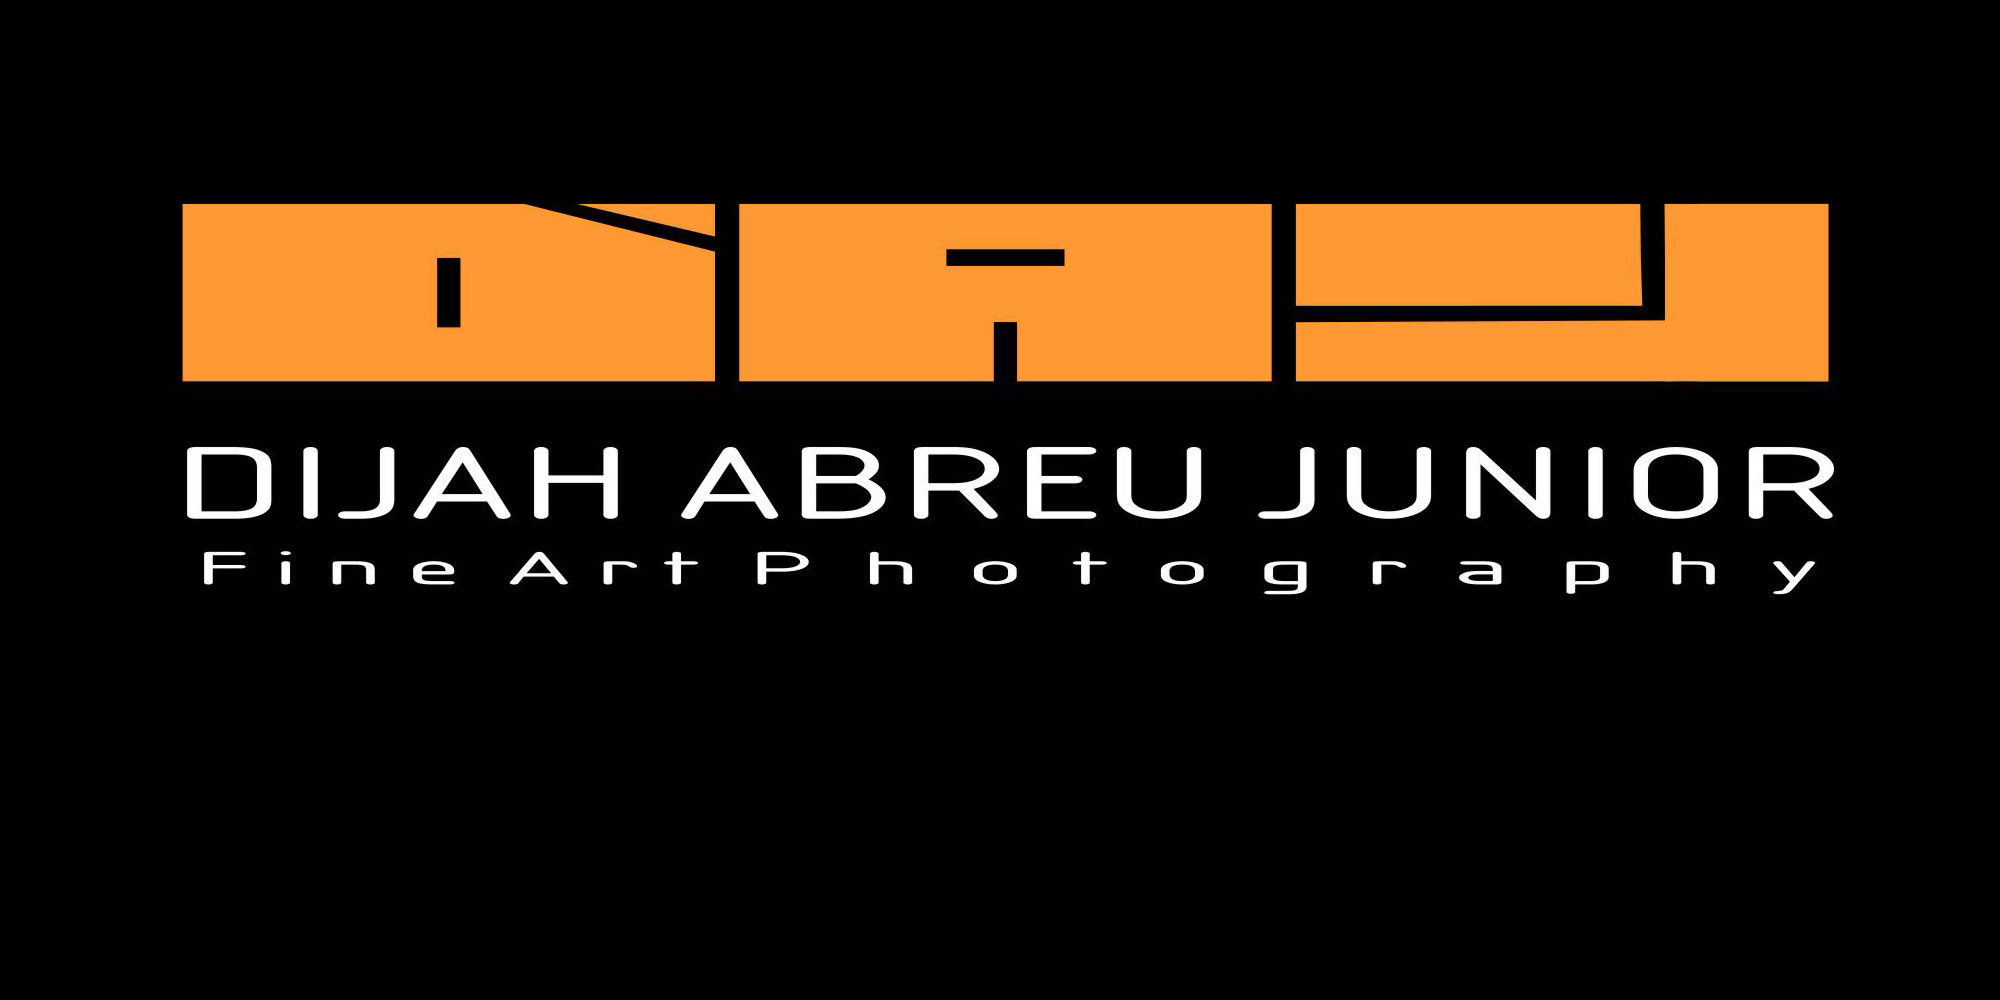 Dijah Abreu Junior's Signature